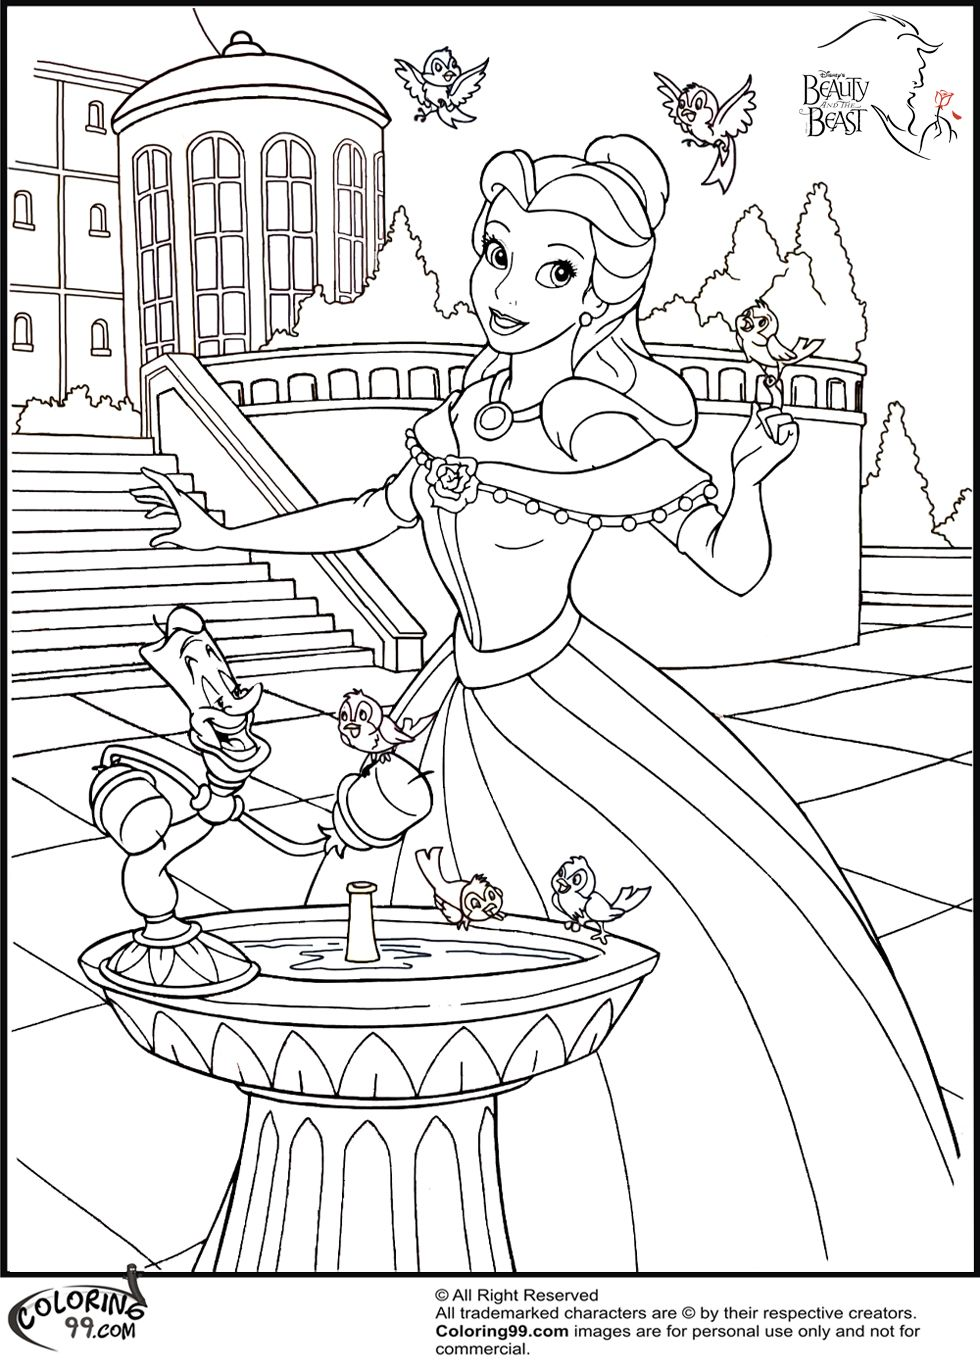 Princess Belle Coloring Pages Home Disney Disney Princess